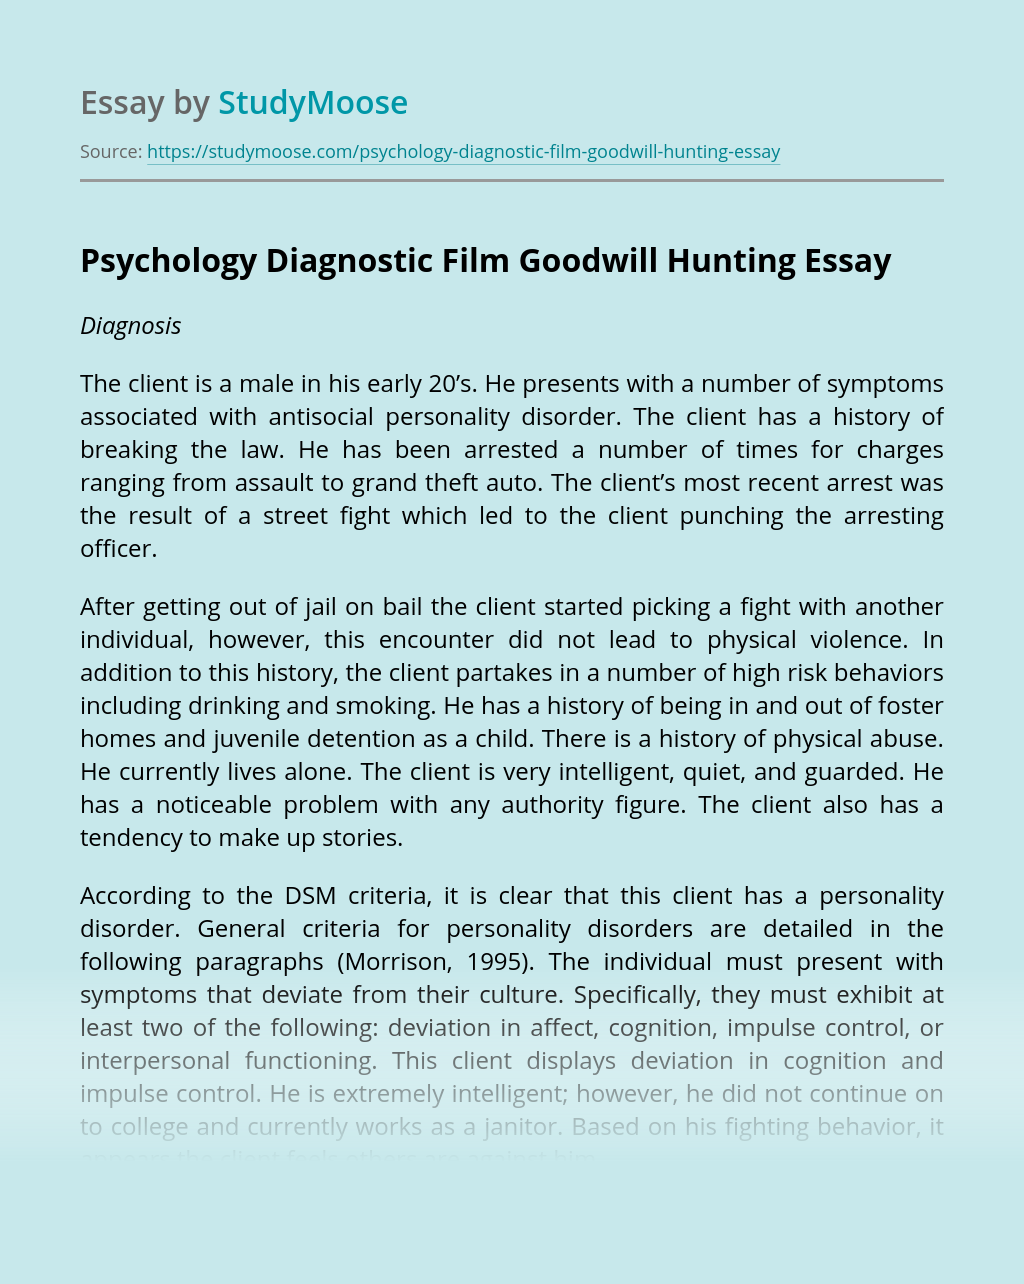 Psychology Diagnostic Film Goodwill Hunting